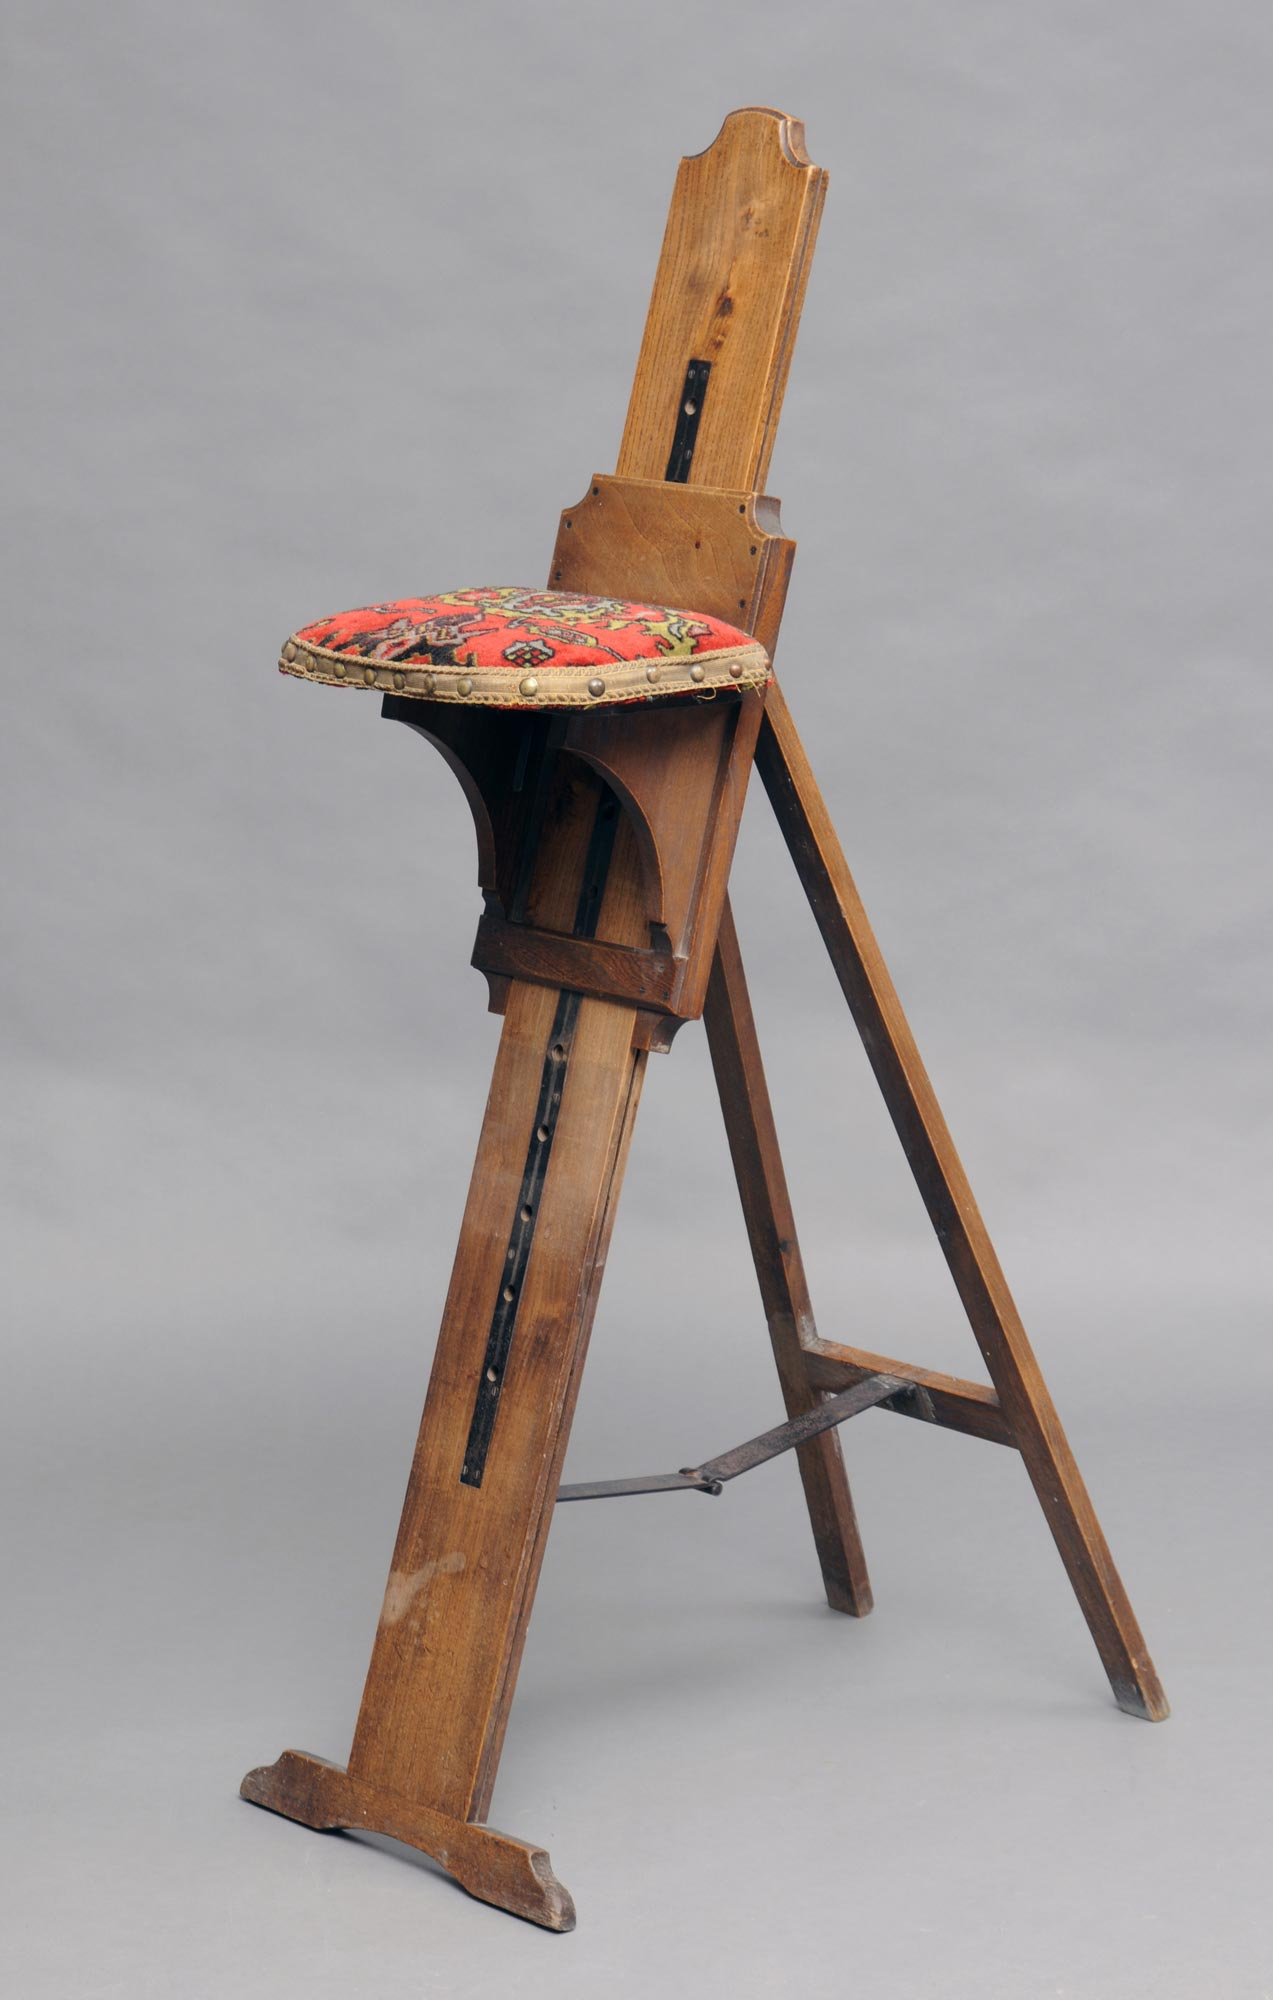 adjustable height chairs iconic leather chair victorian traveling combination artist's easel and seat